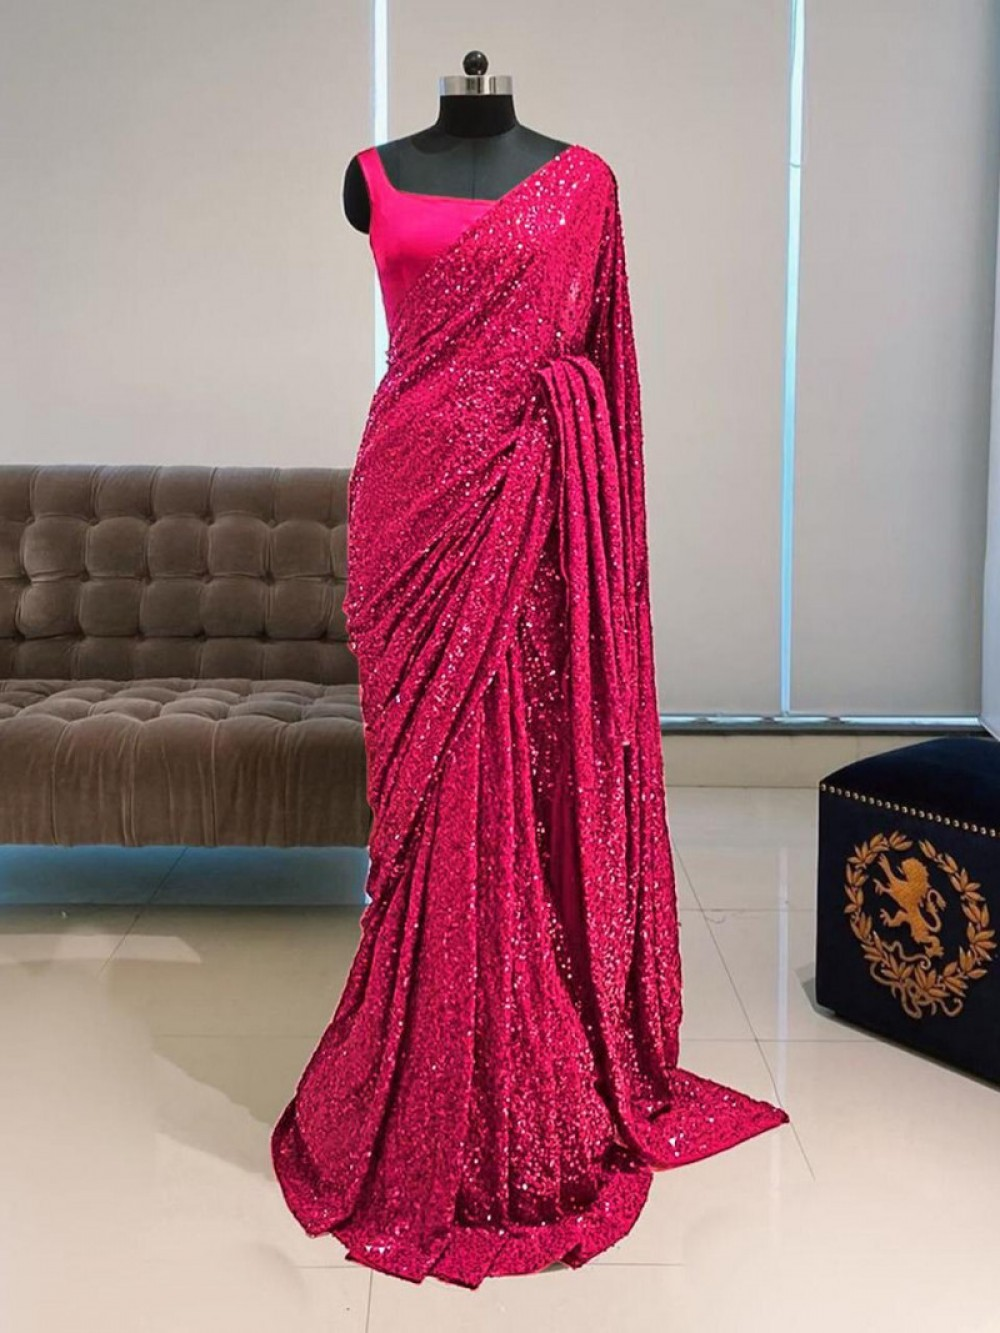 Charming Pink Colour Sequence Worked Saree For Festival Wear